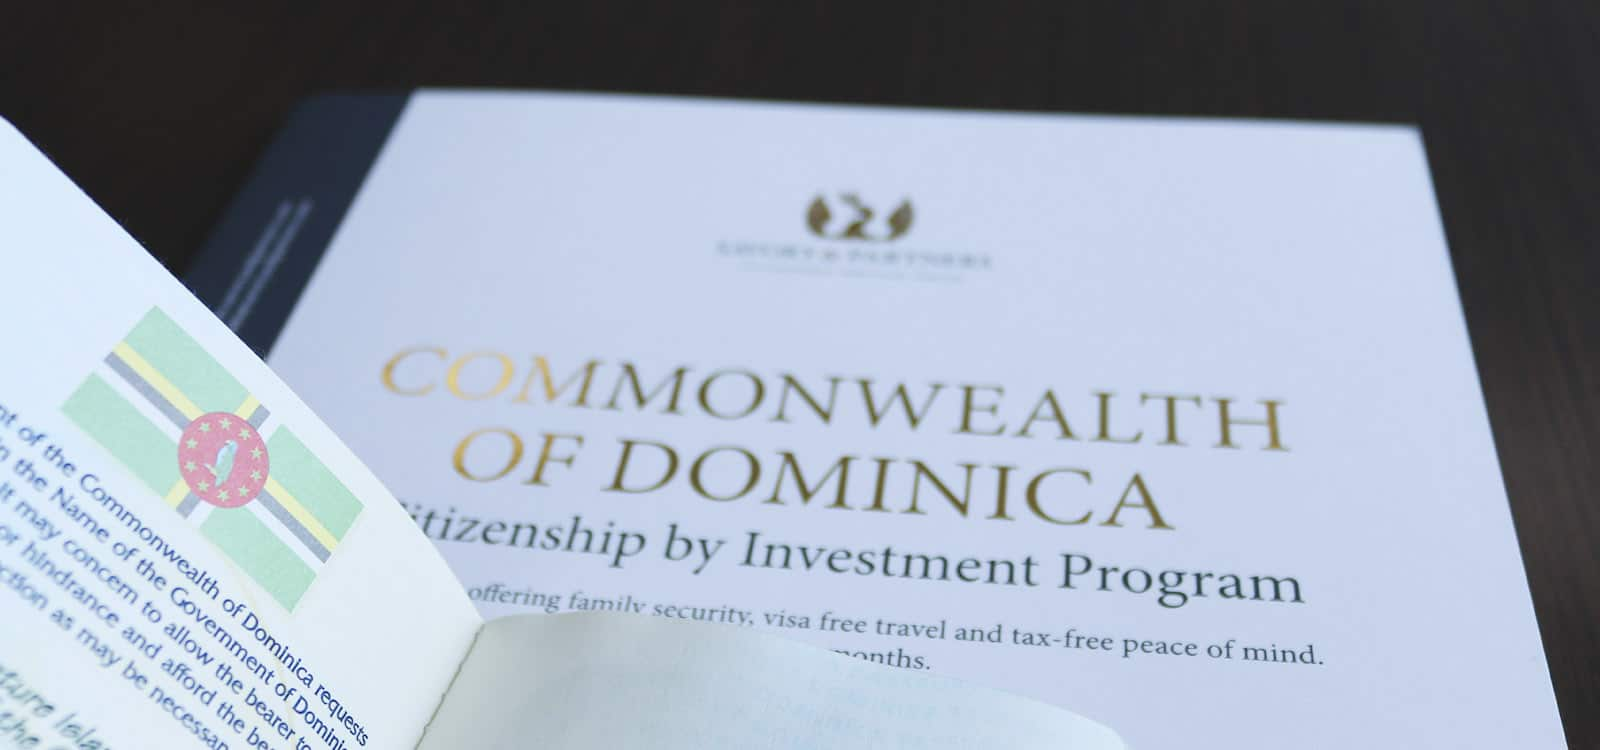 Dominica Citizenship by Investment Program